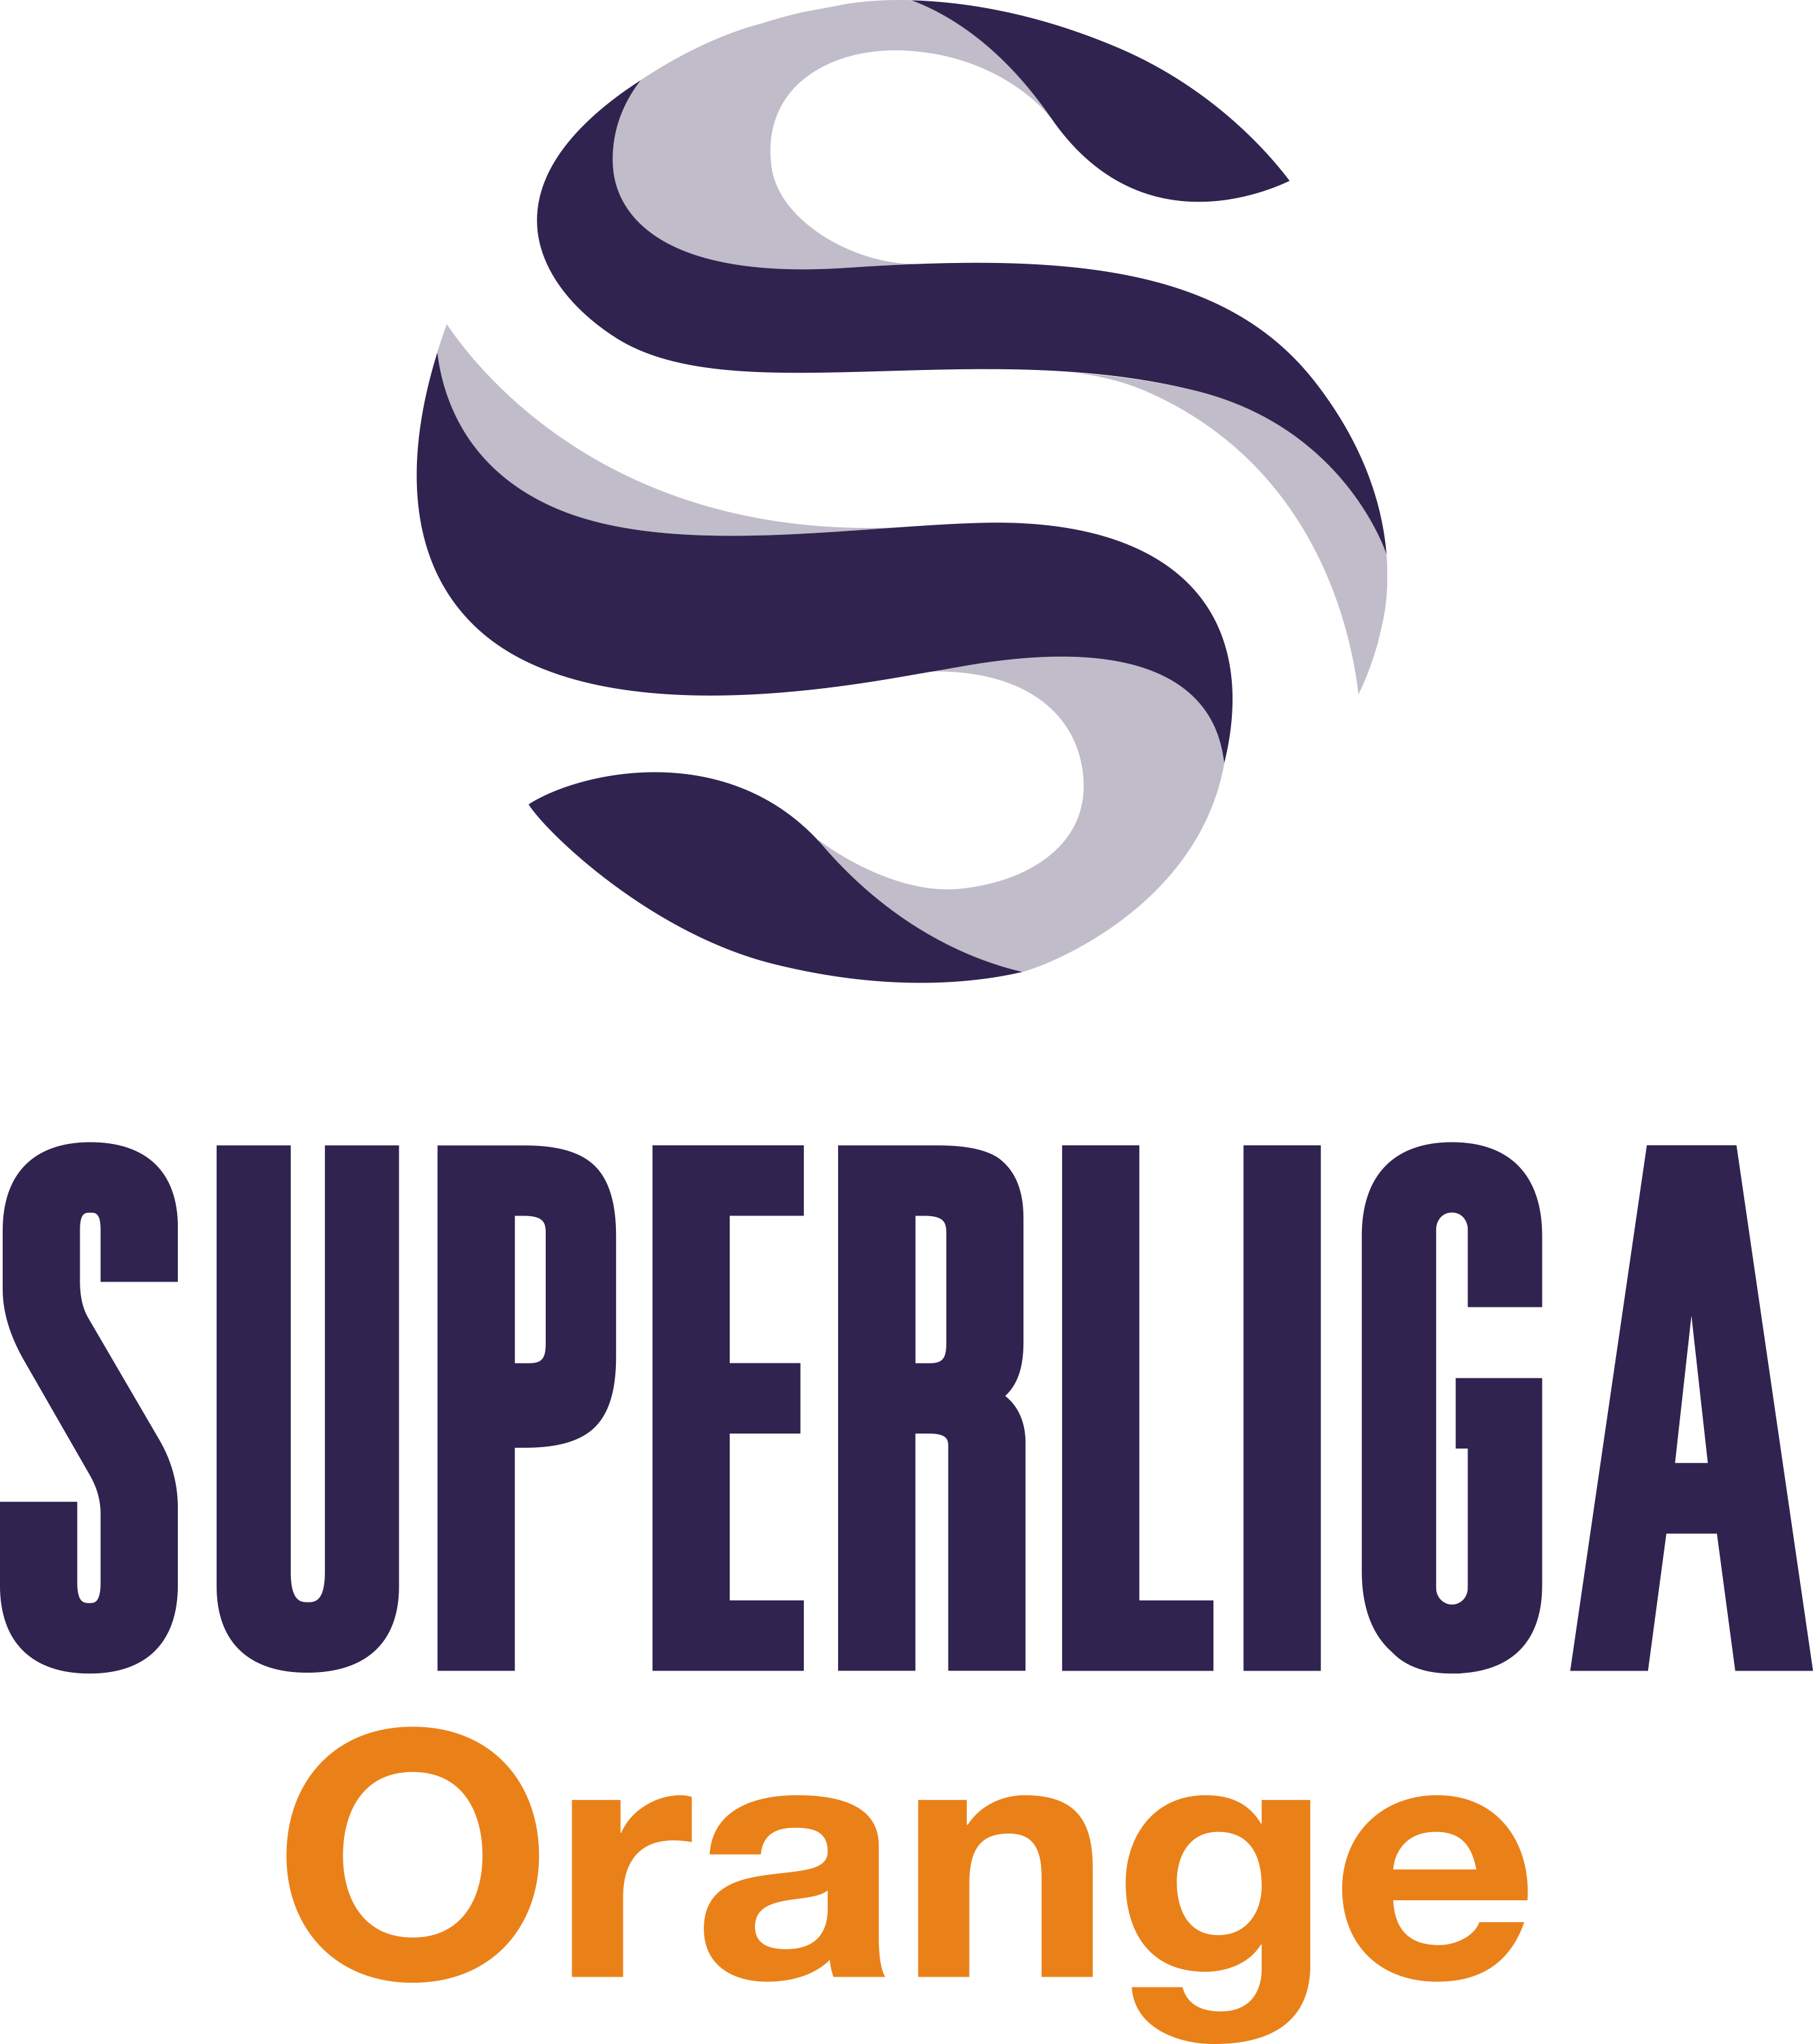 LVP SuperLiga Orange  League of Legends Tournament